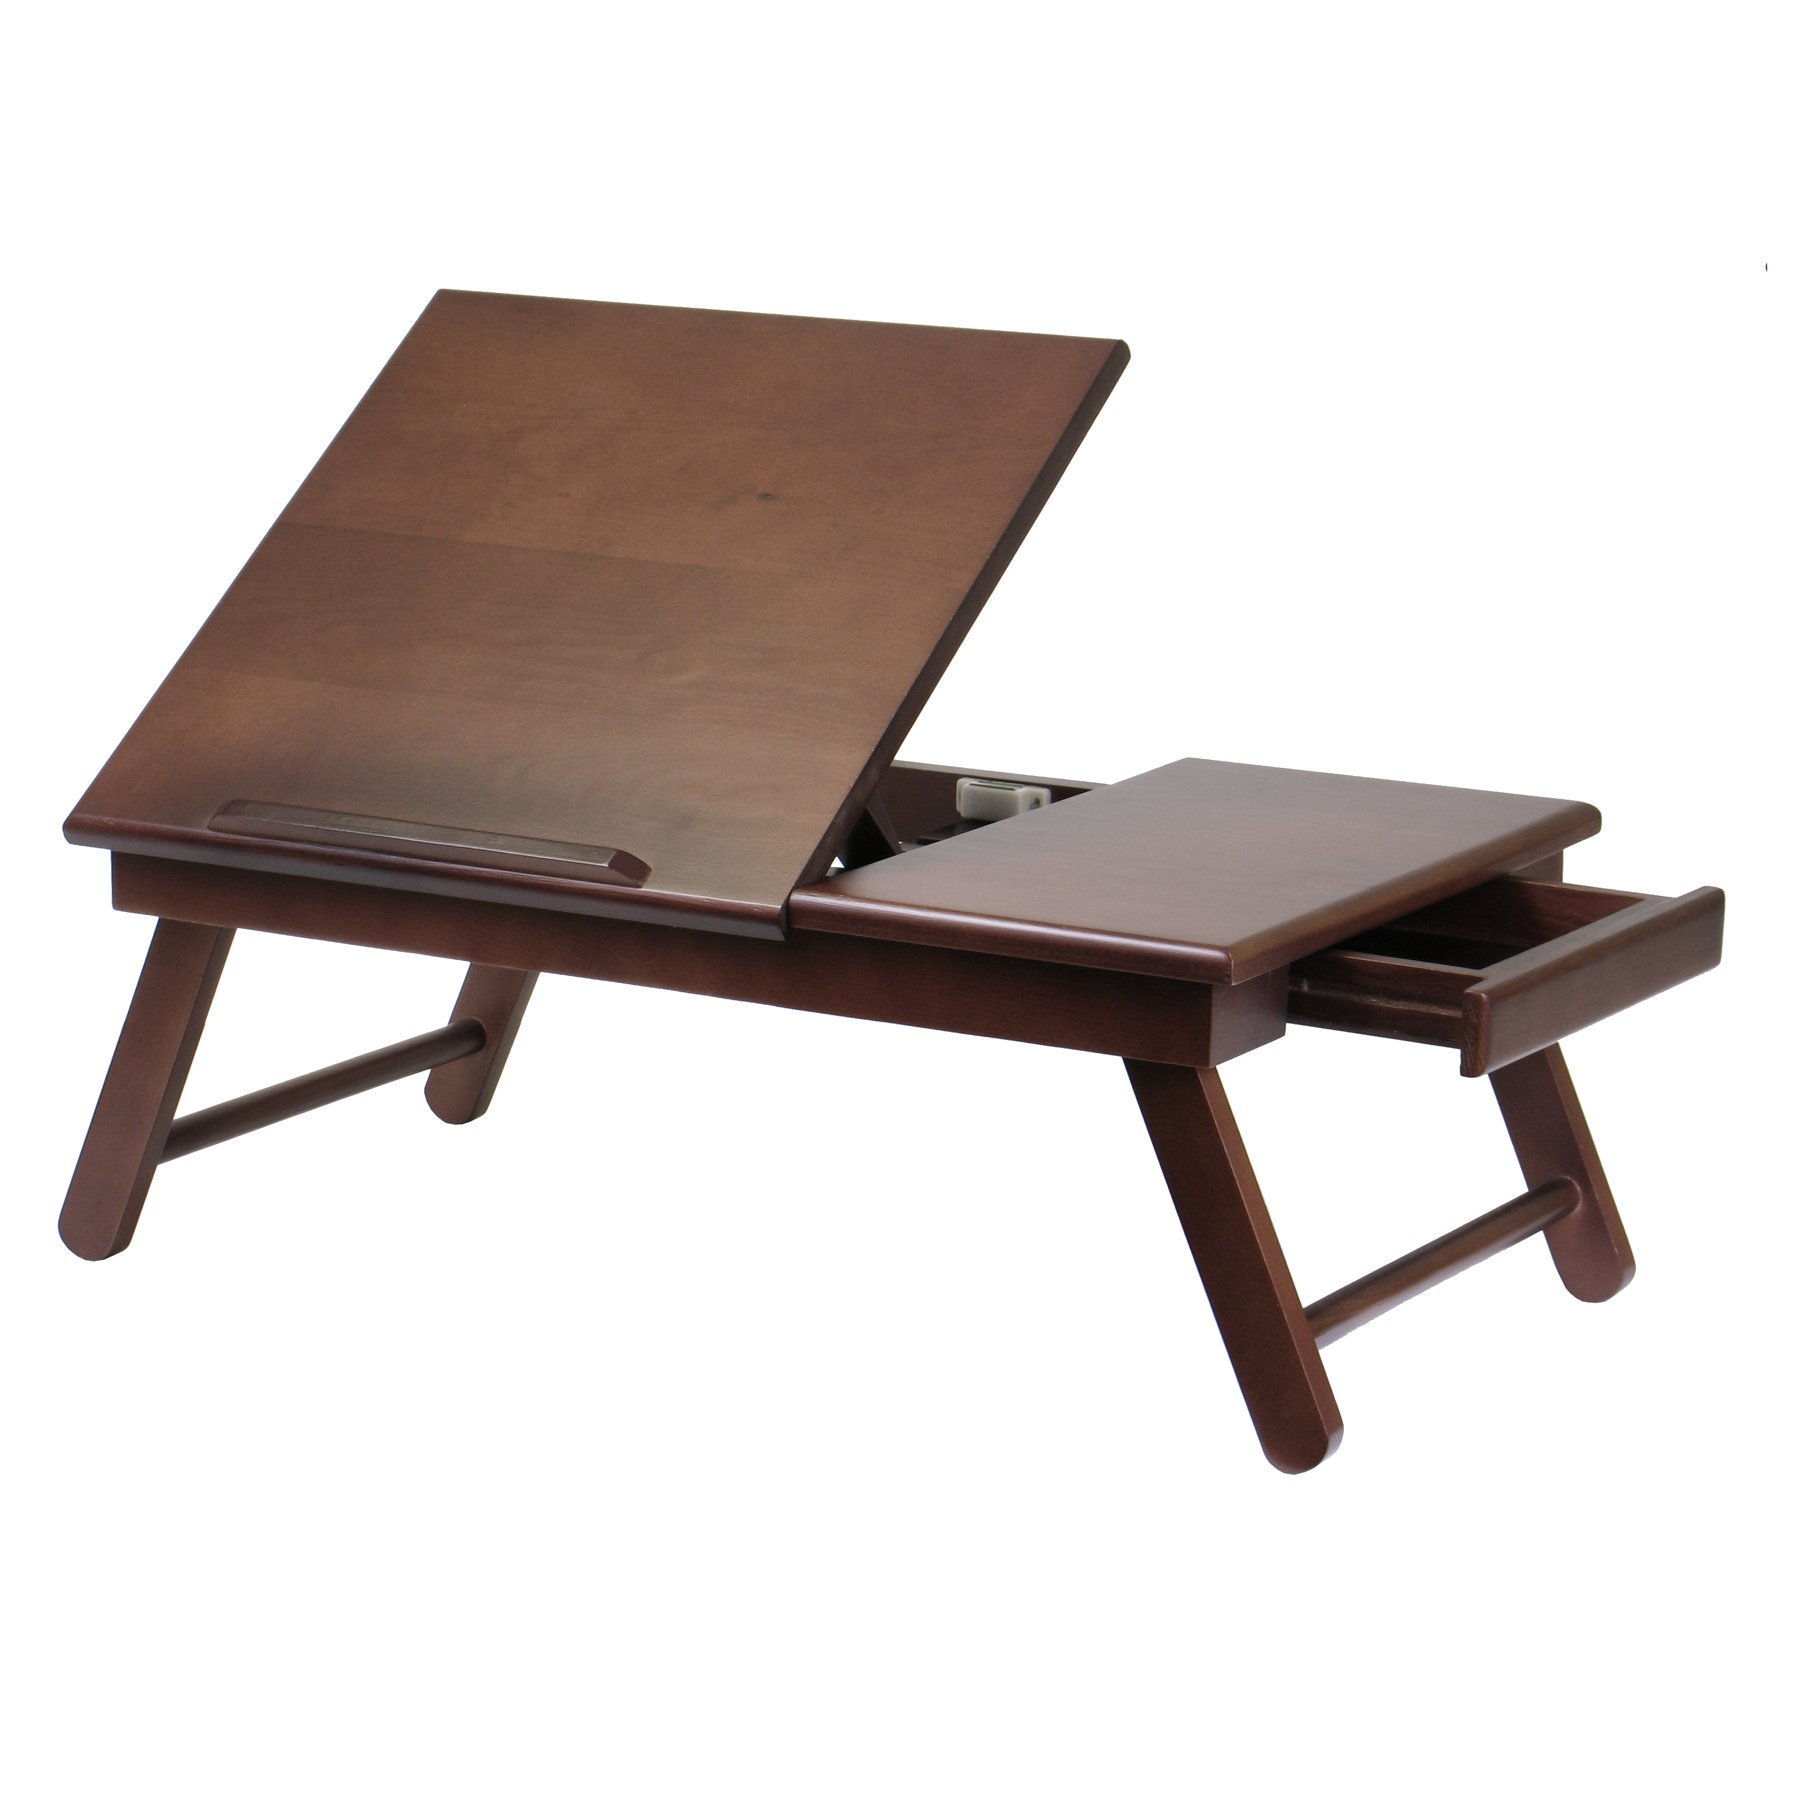 Workstation Portable Laptop Desk Computer Serving Tray